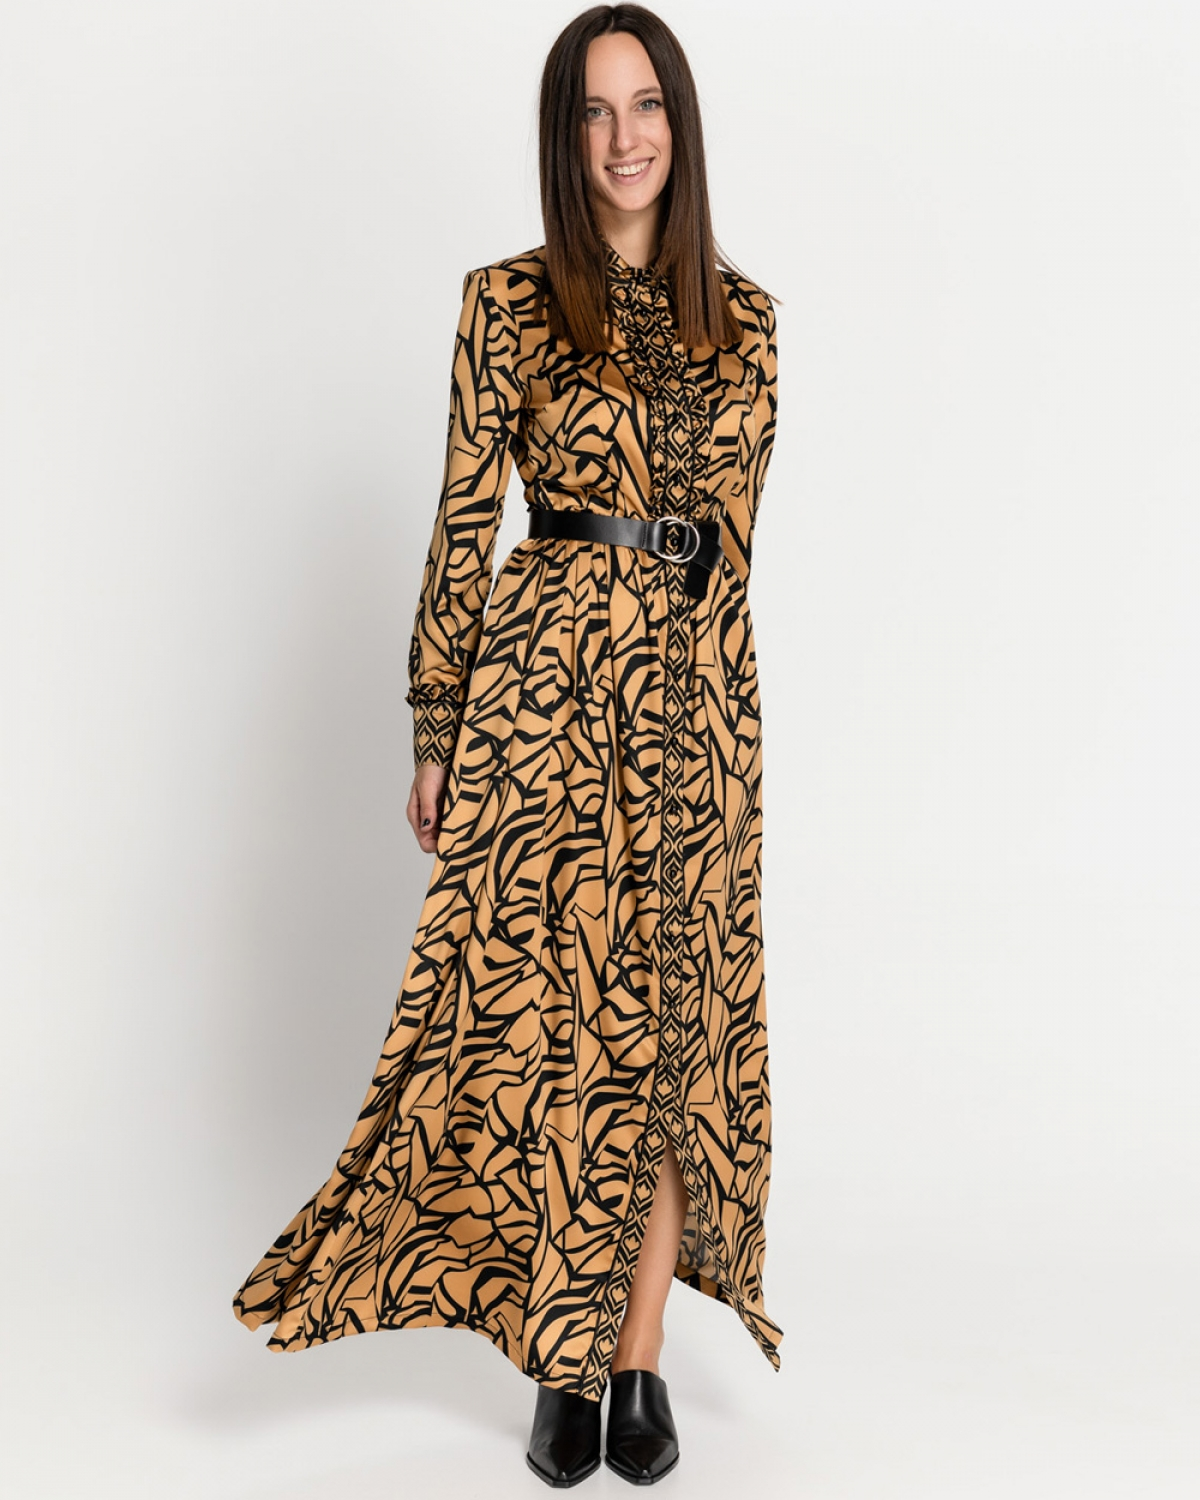 Gold Tone Printed Satin Dress